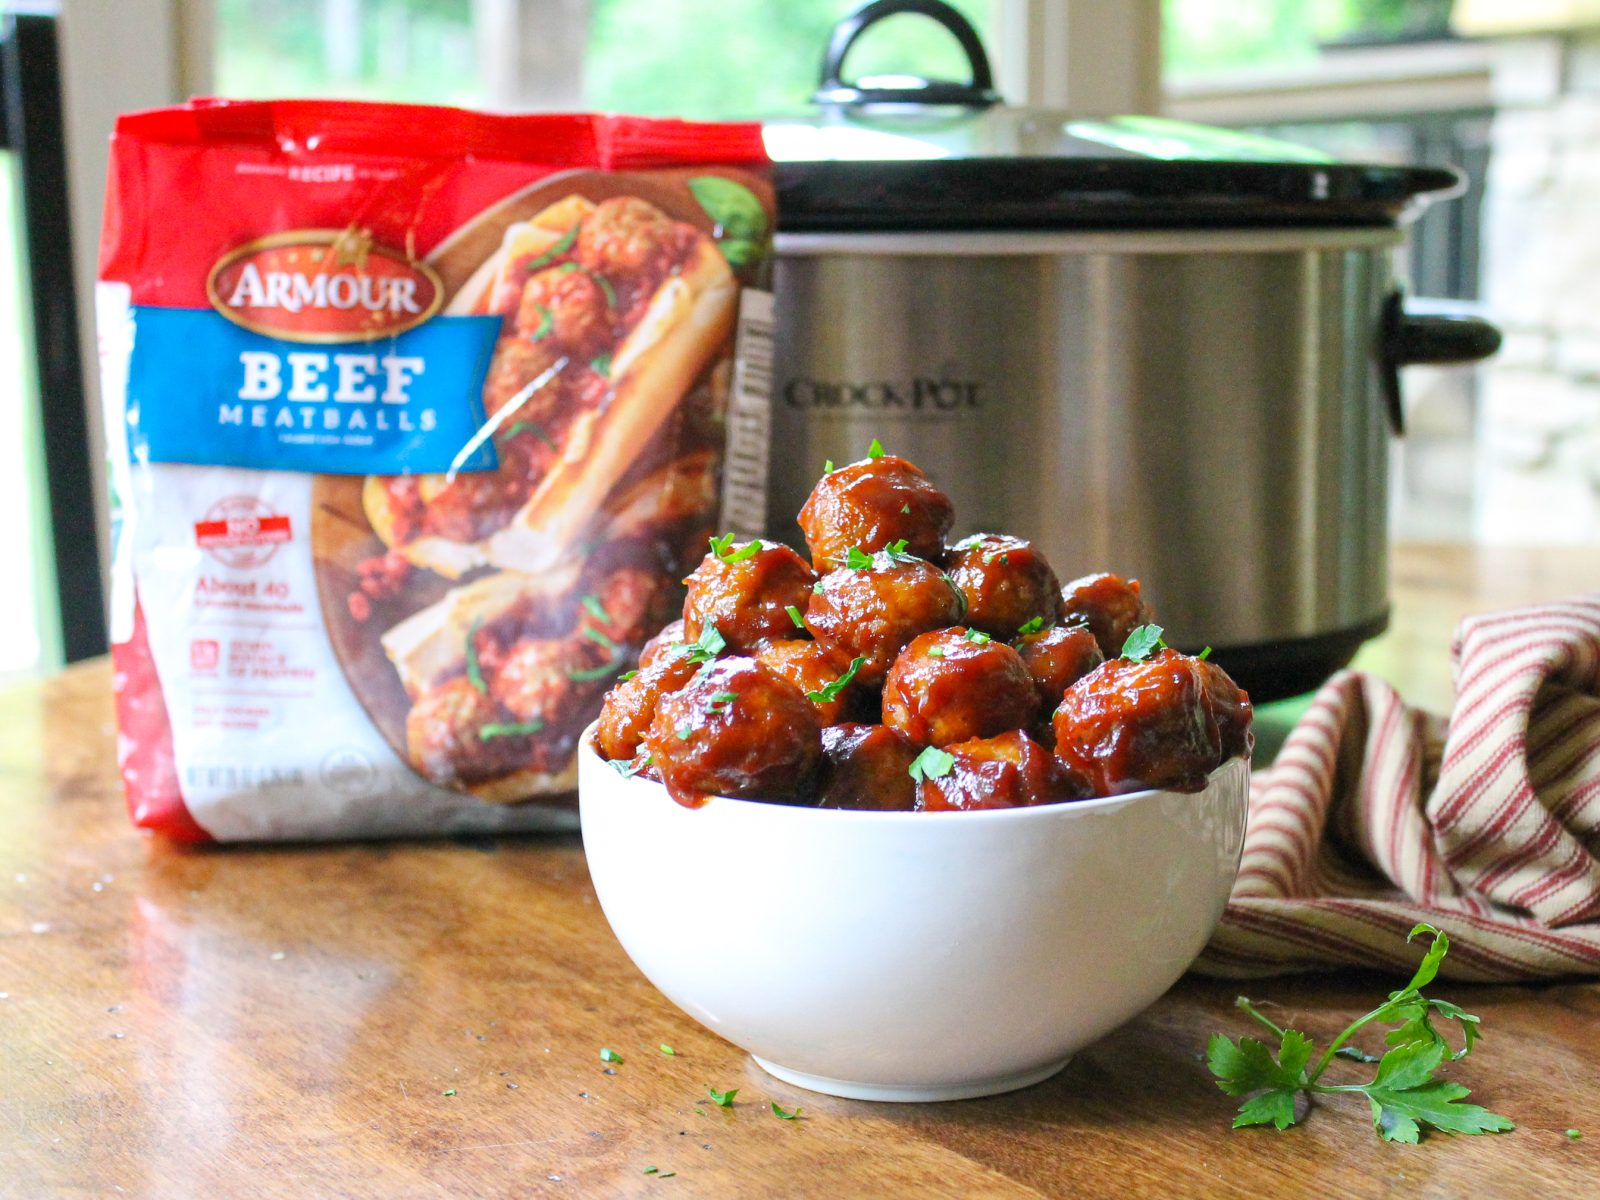 Serve Up Great Taste At Your Holiday Gathering - Serve Up Armour Meatballs & Save Now At Publix on I Heart Publix 1